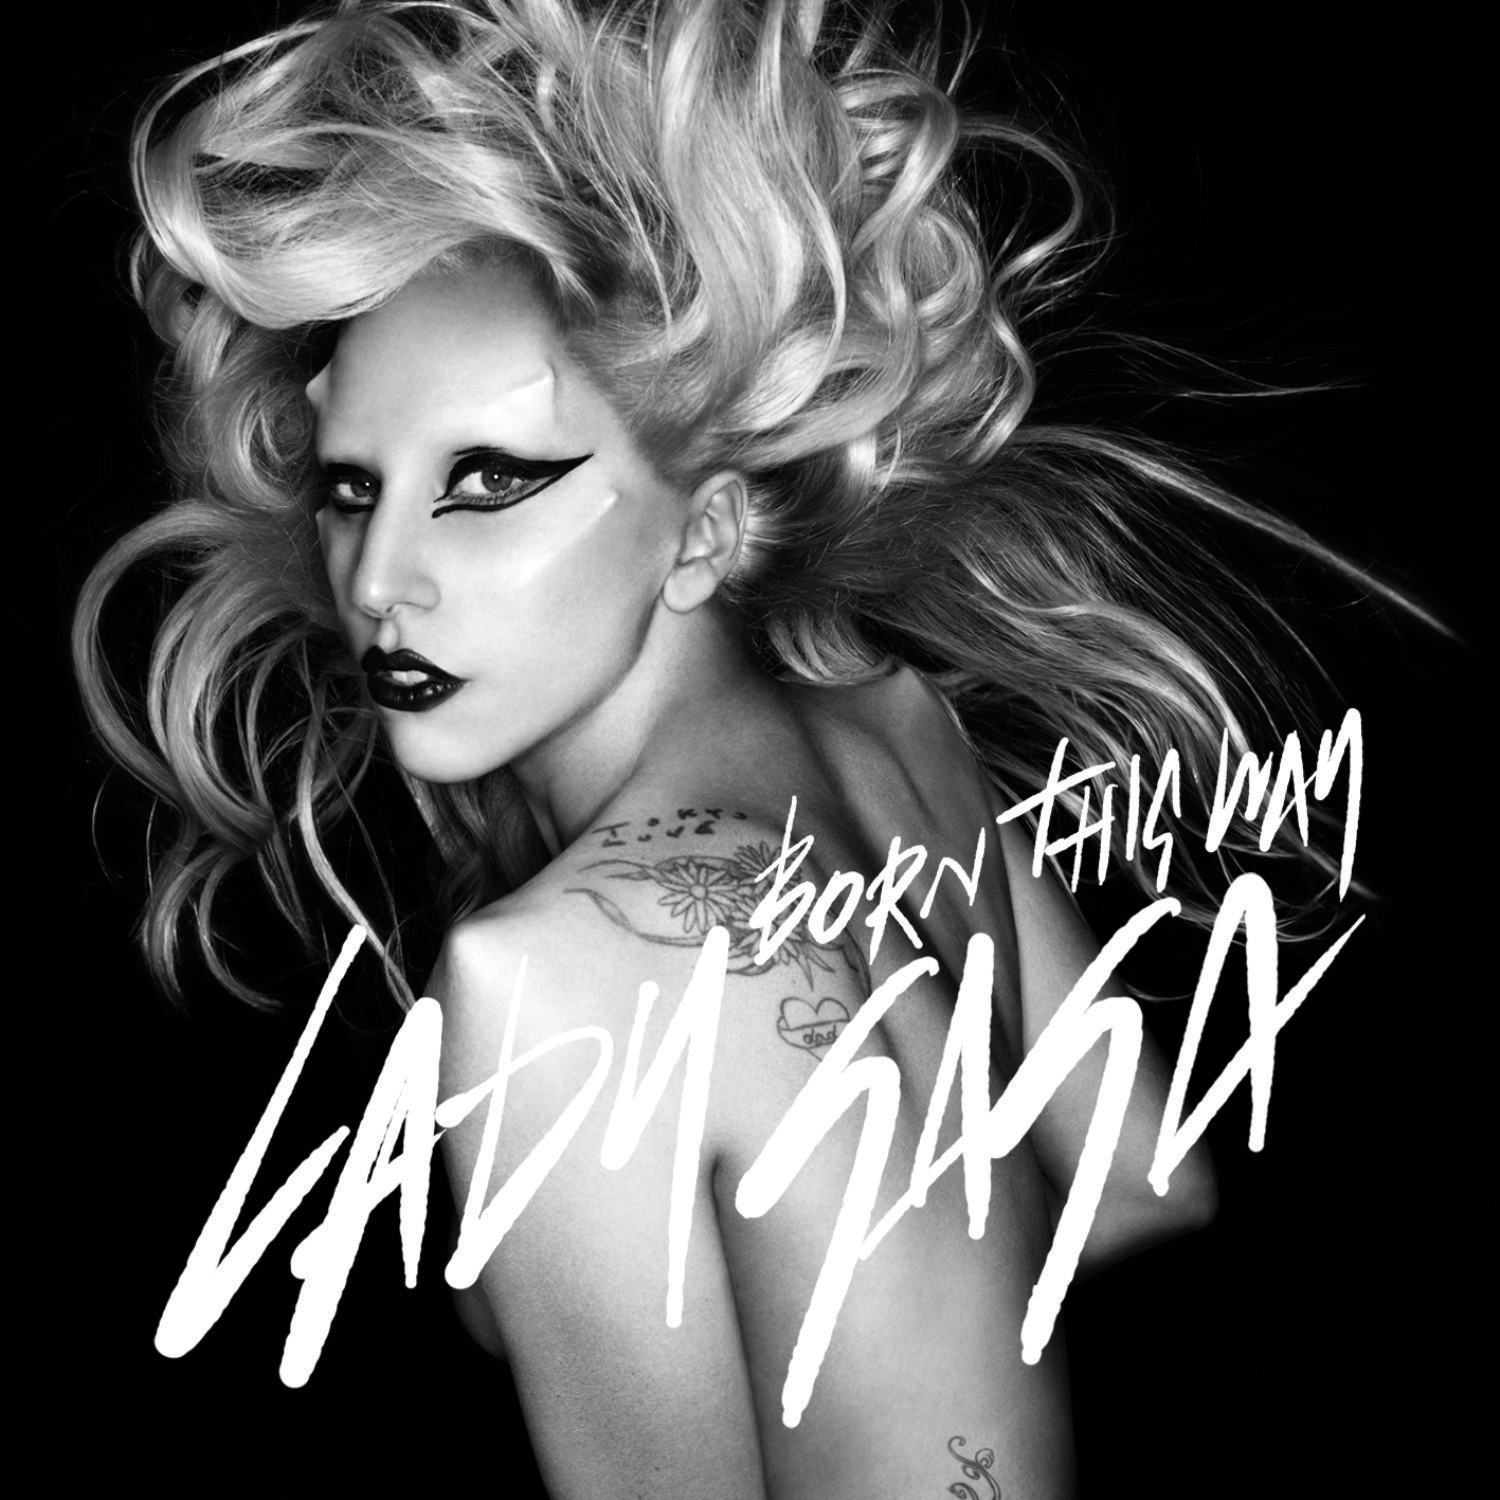 http://3.bp.blogspot.com/-HOH28Luswkk/TbAw27jq9UI/AAAAAAAAJr8/7gGEbDuFVcw/s1600/Lady-GaGa-%25E2%2580%2593-Born-This-Way-Official-Single-Cover.jpg